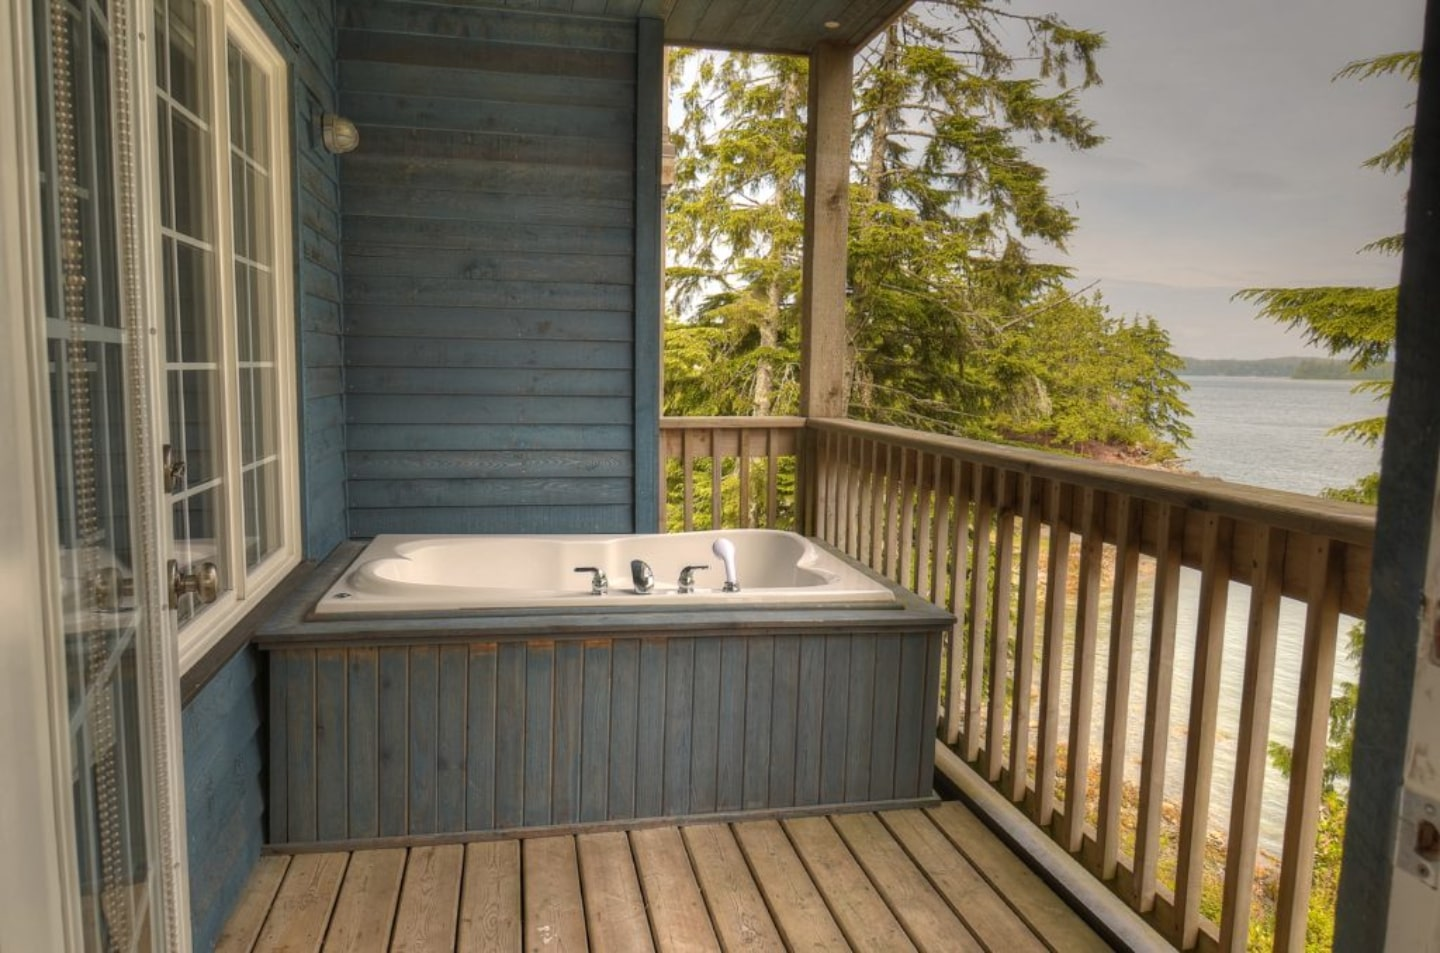 Outdoor Tub on the Patio